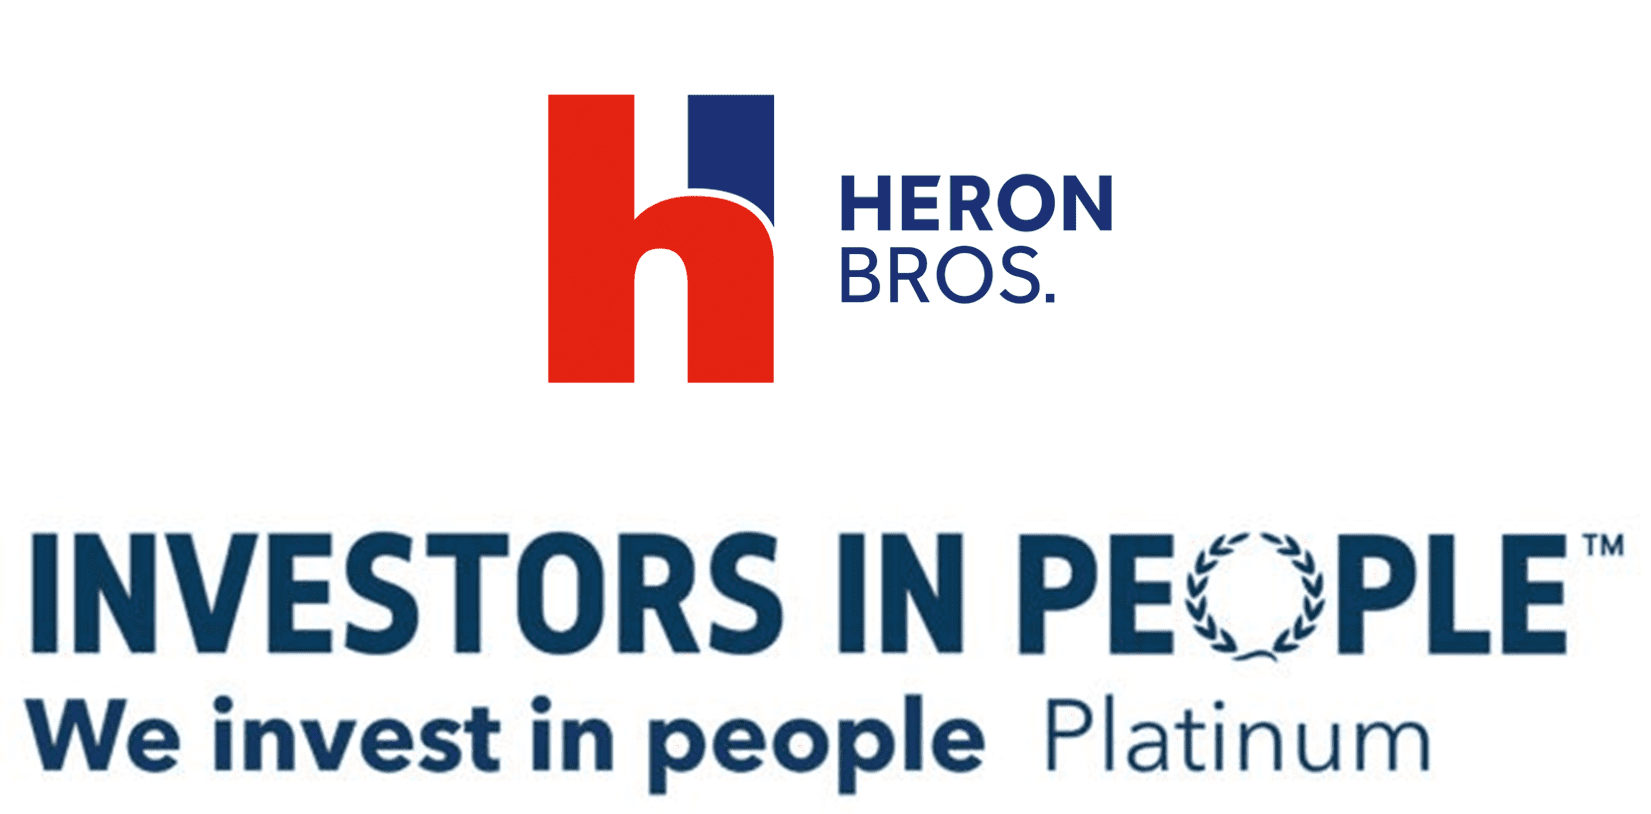 Heron Bros retain Investors in People Platinum re-accreditation